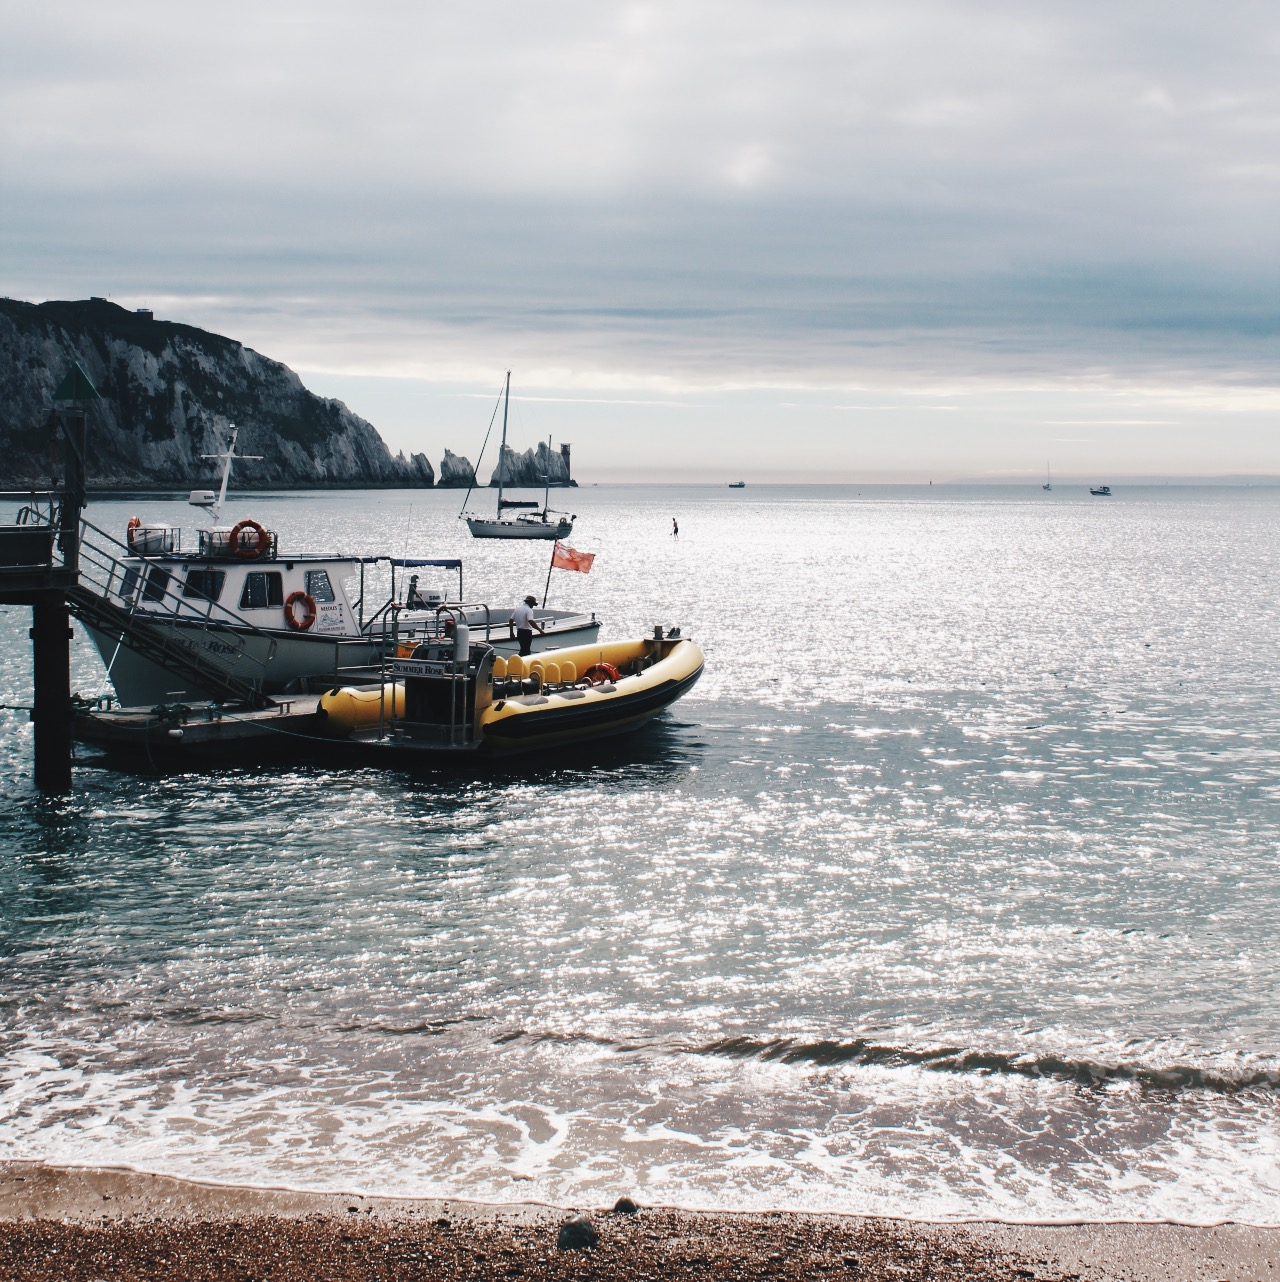 The boat runs regularly from the beach near the Needles.